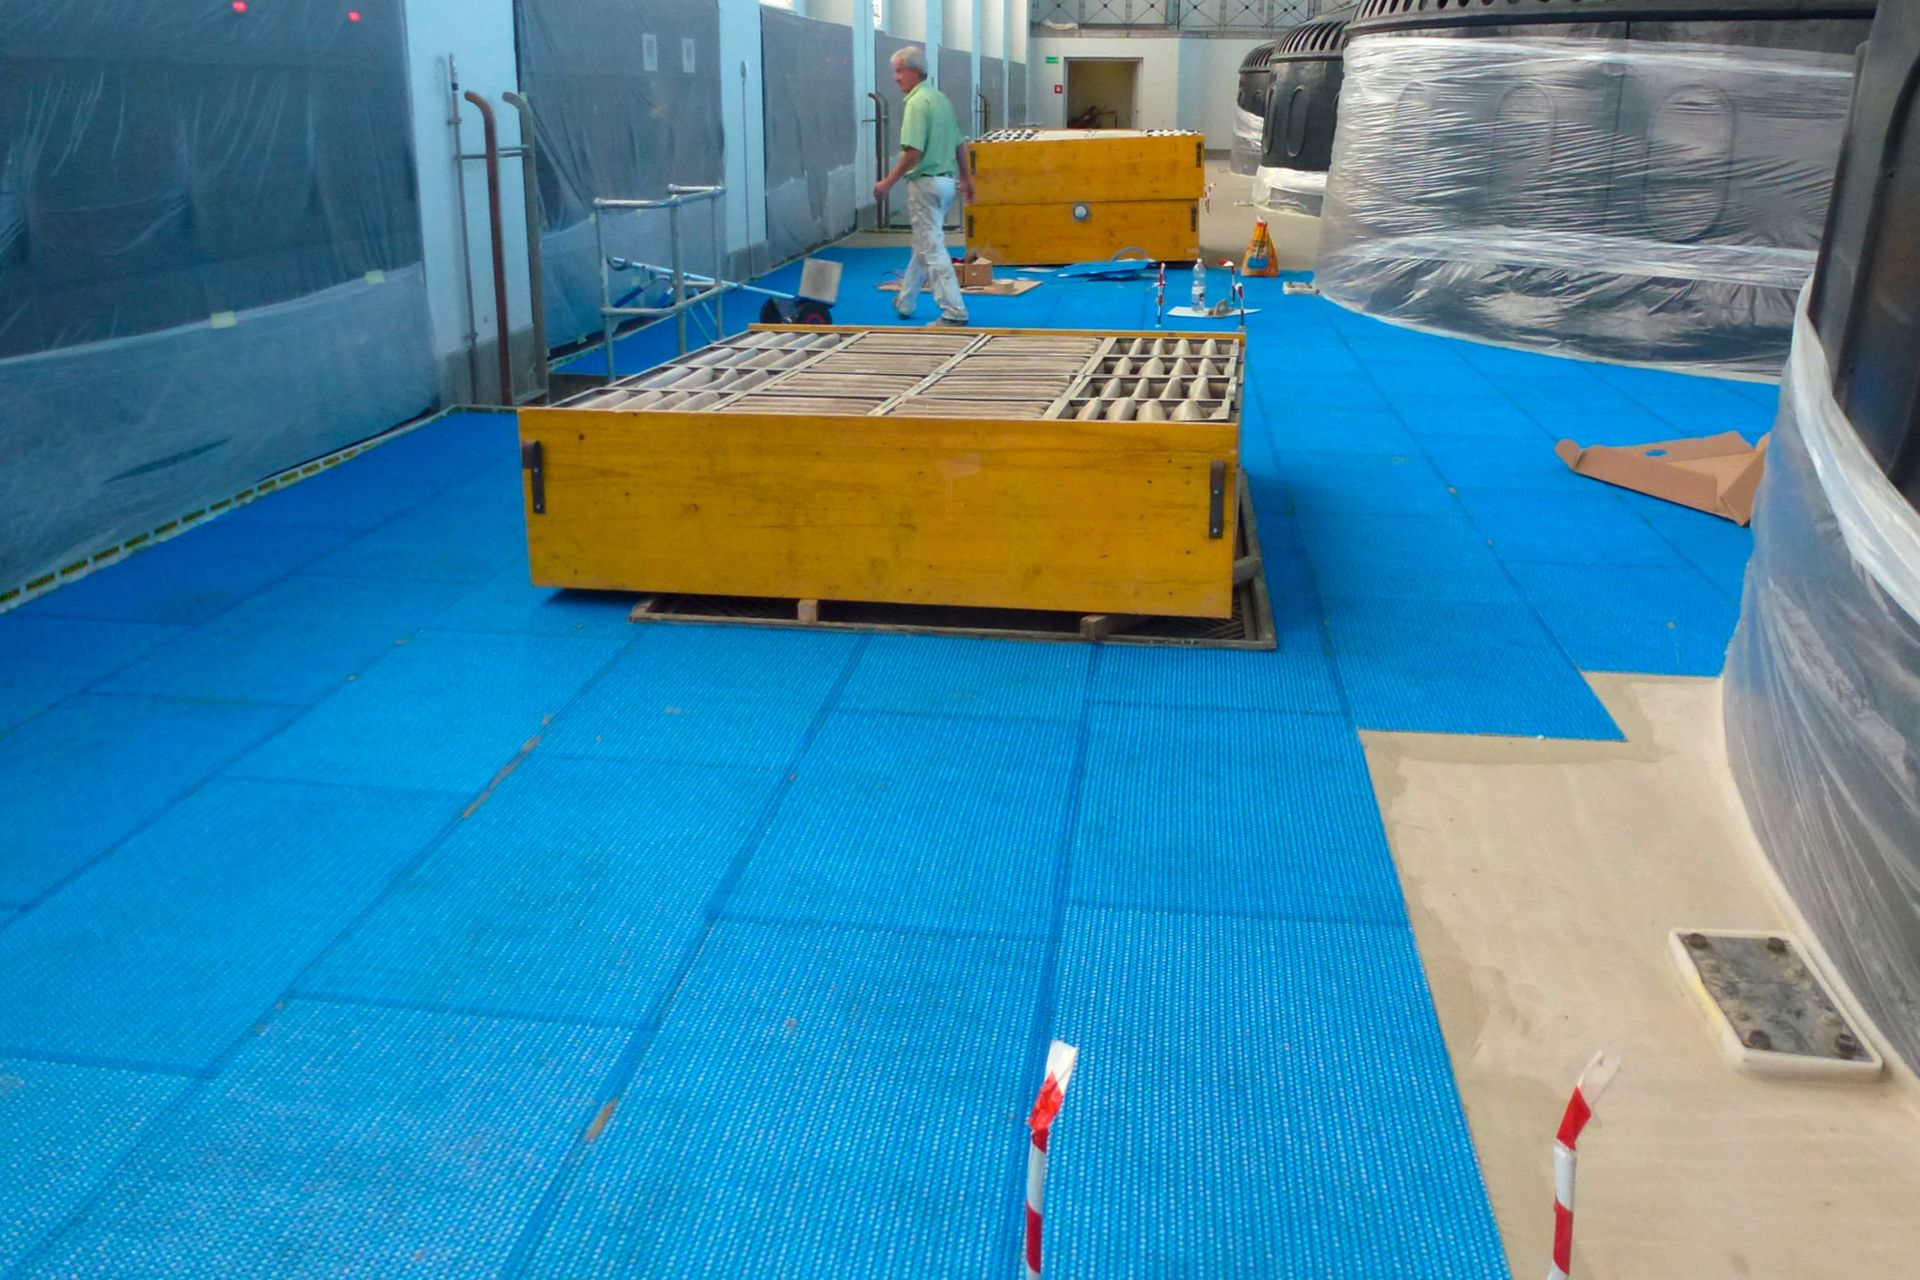 Floor renovation at hydropower plant in Eglisau, Switzerland